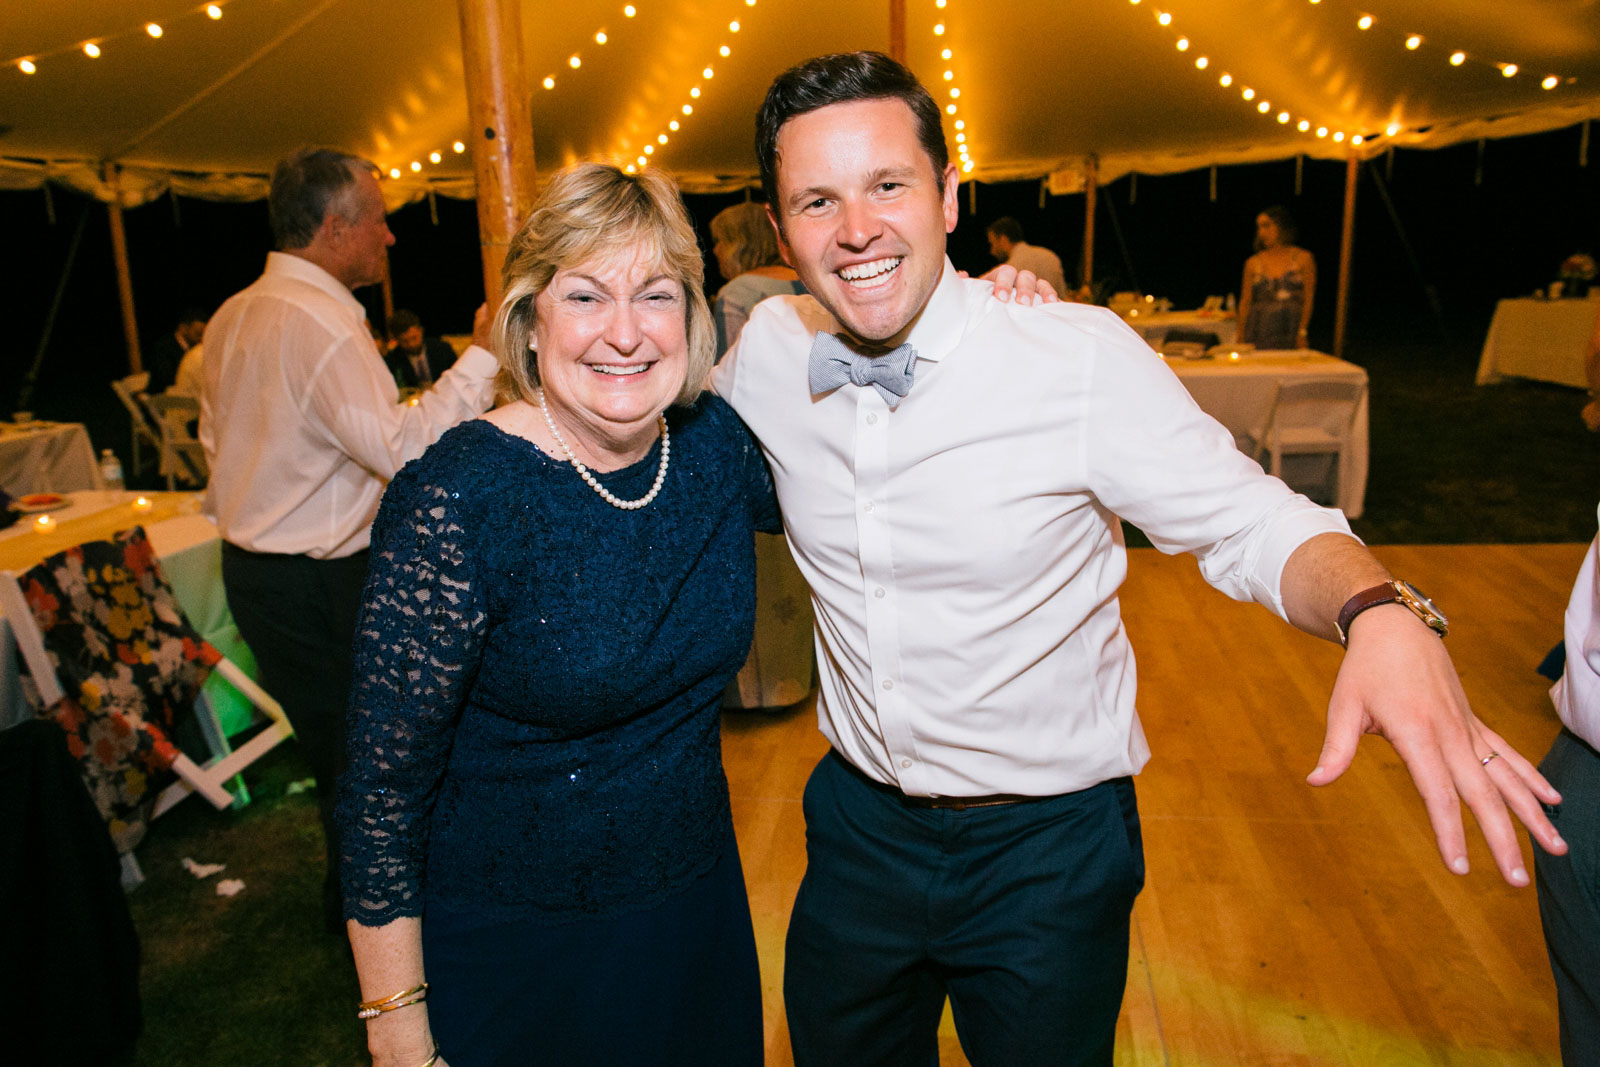 Groom and mother of the bride smiling on the dance floor at tented wedding reception.